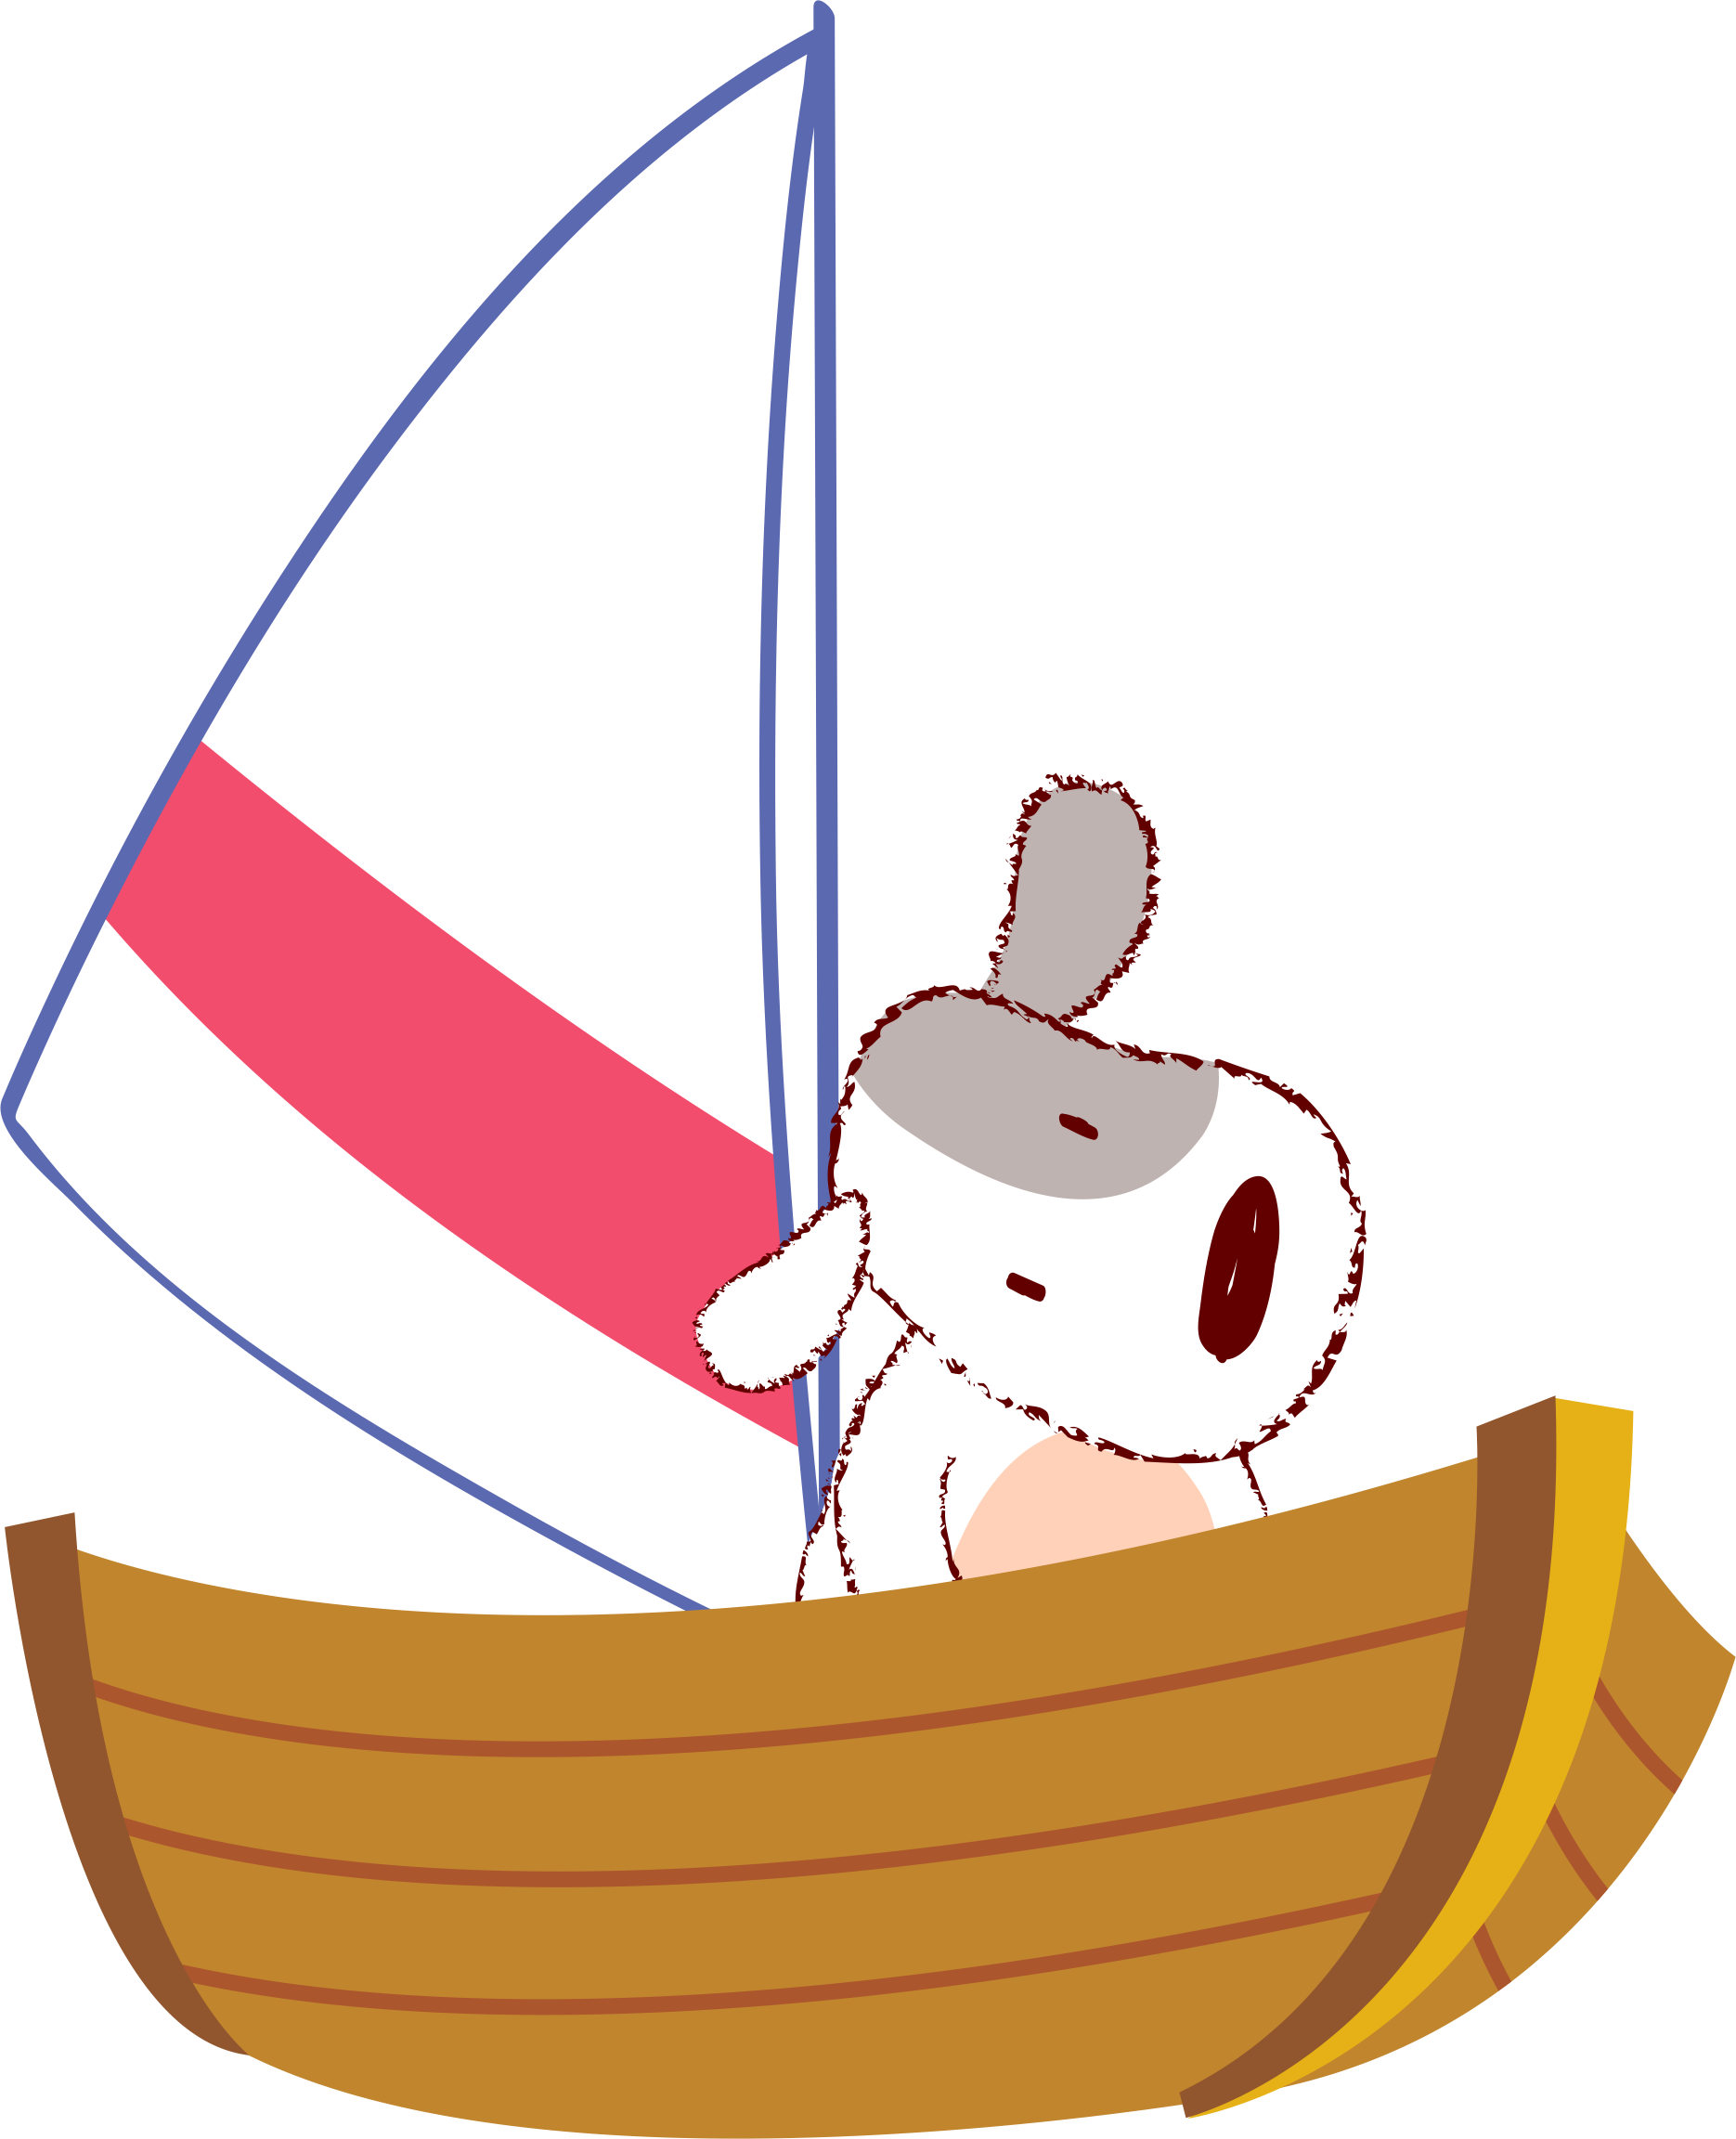 Dog on sailboat clipart clip art free download Dog Puppy Boat Clip art - Dog 1870*2304 transprent Png Free Download ... clip art free download